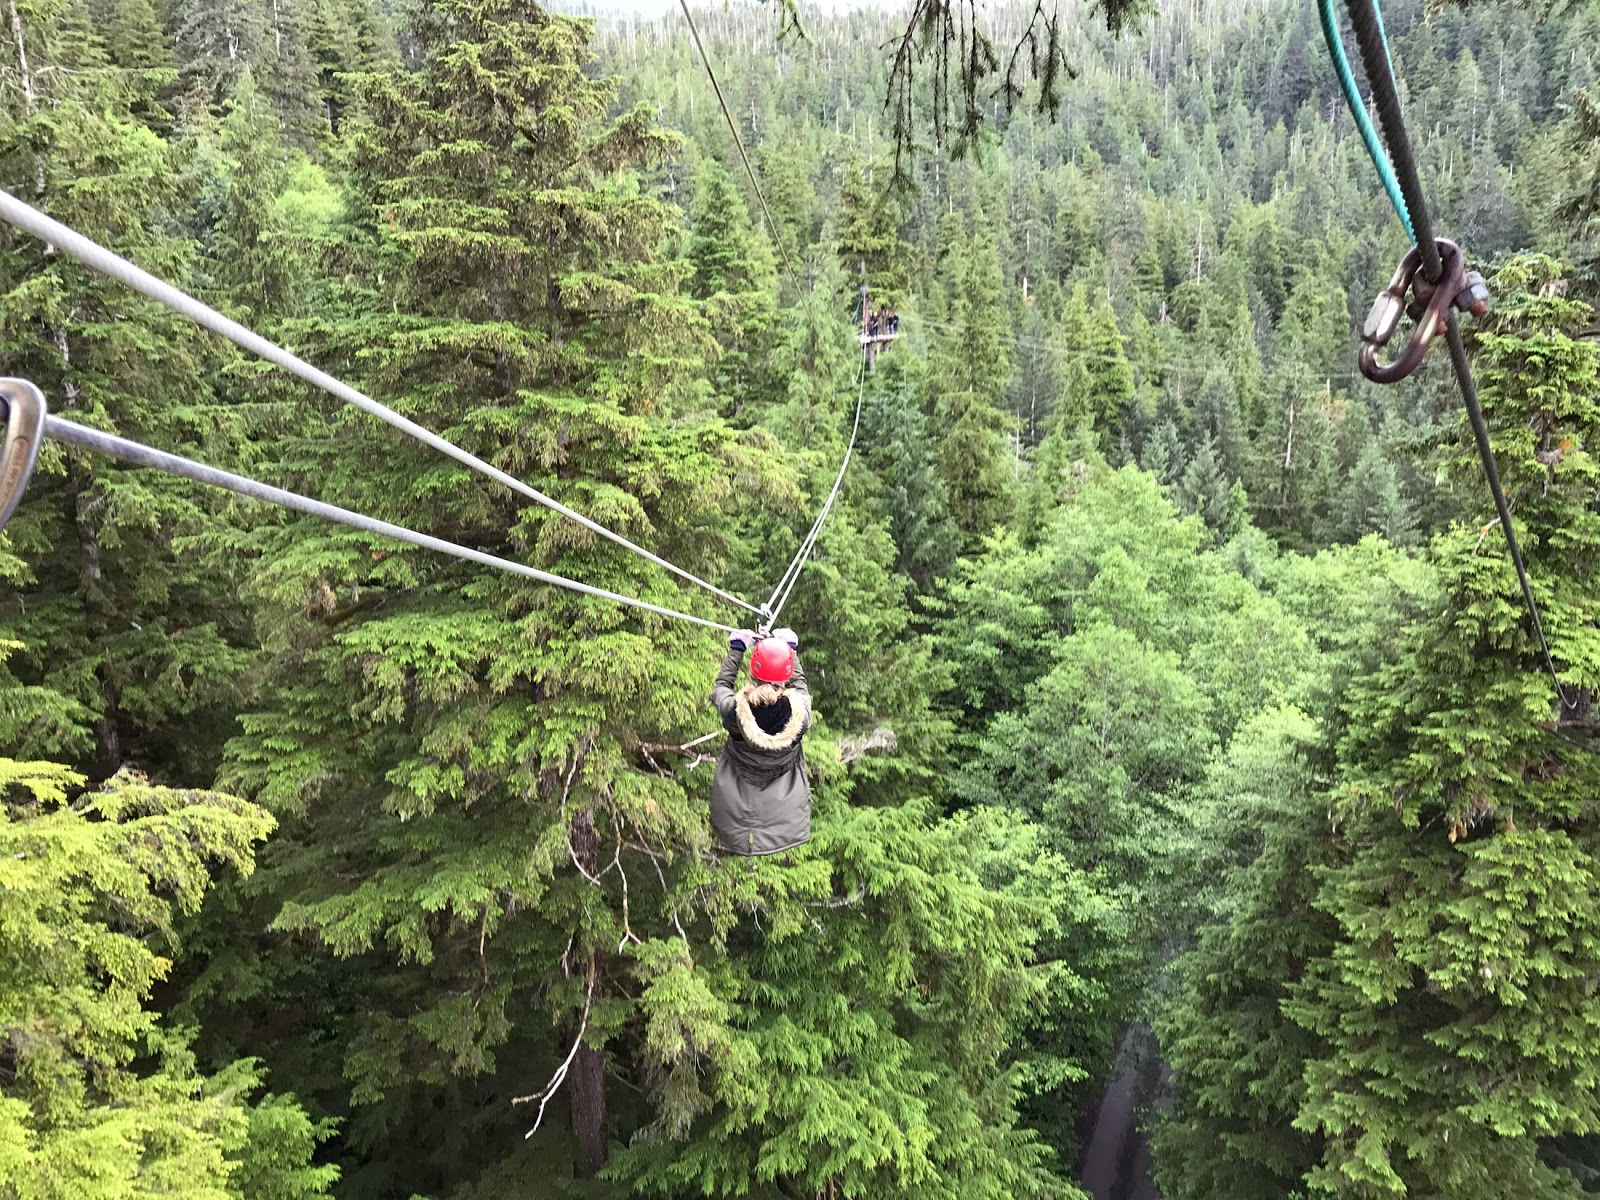 Ziplining through rainforest in Ketchikan